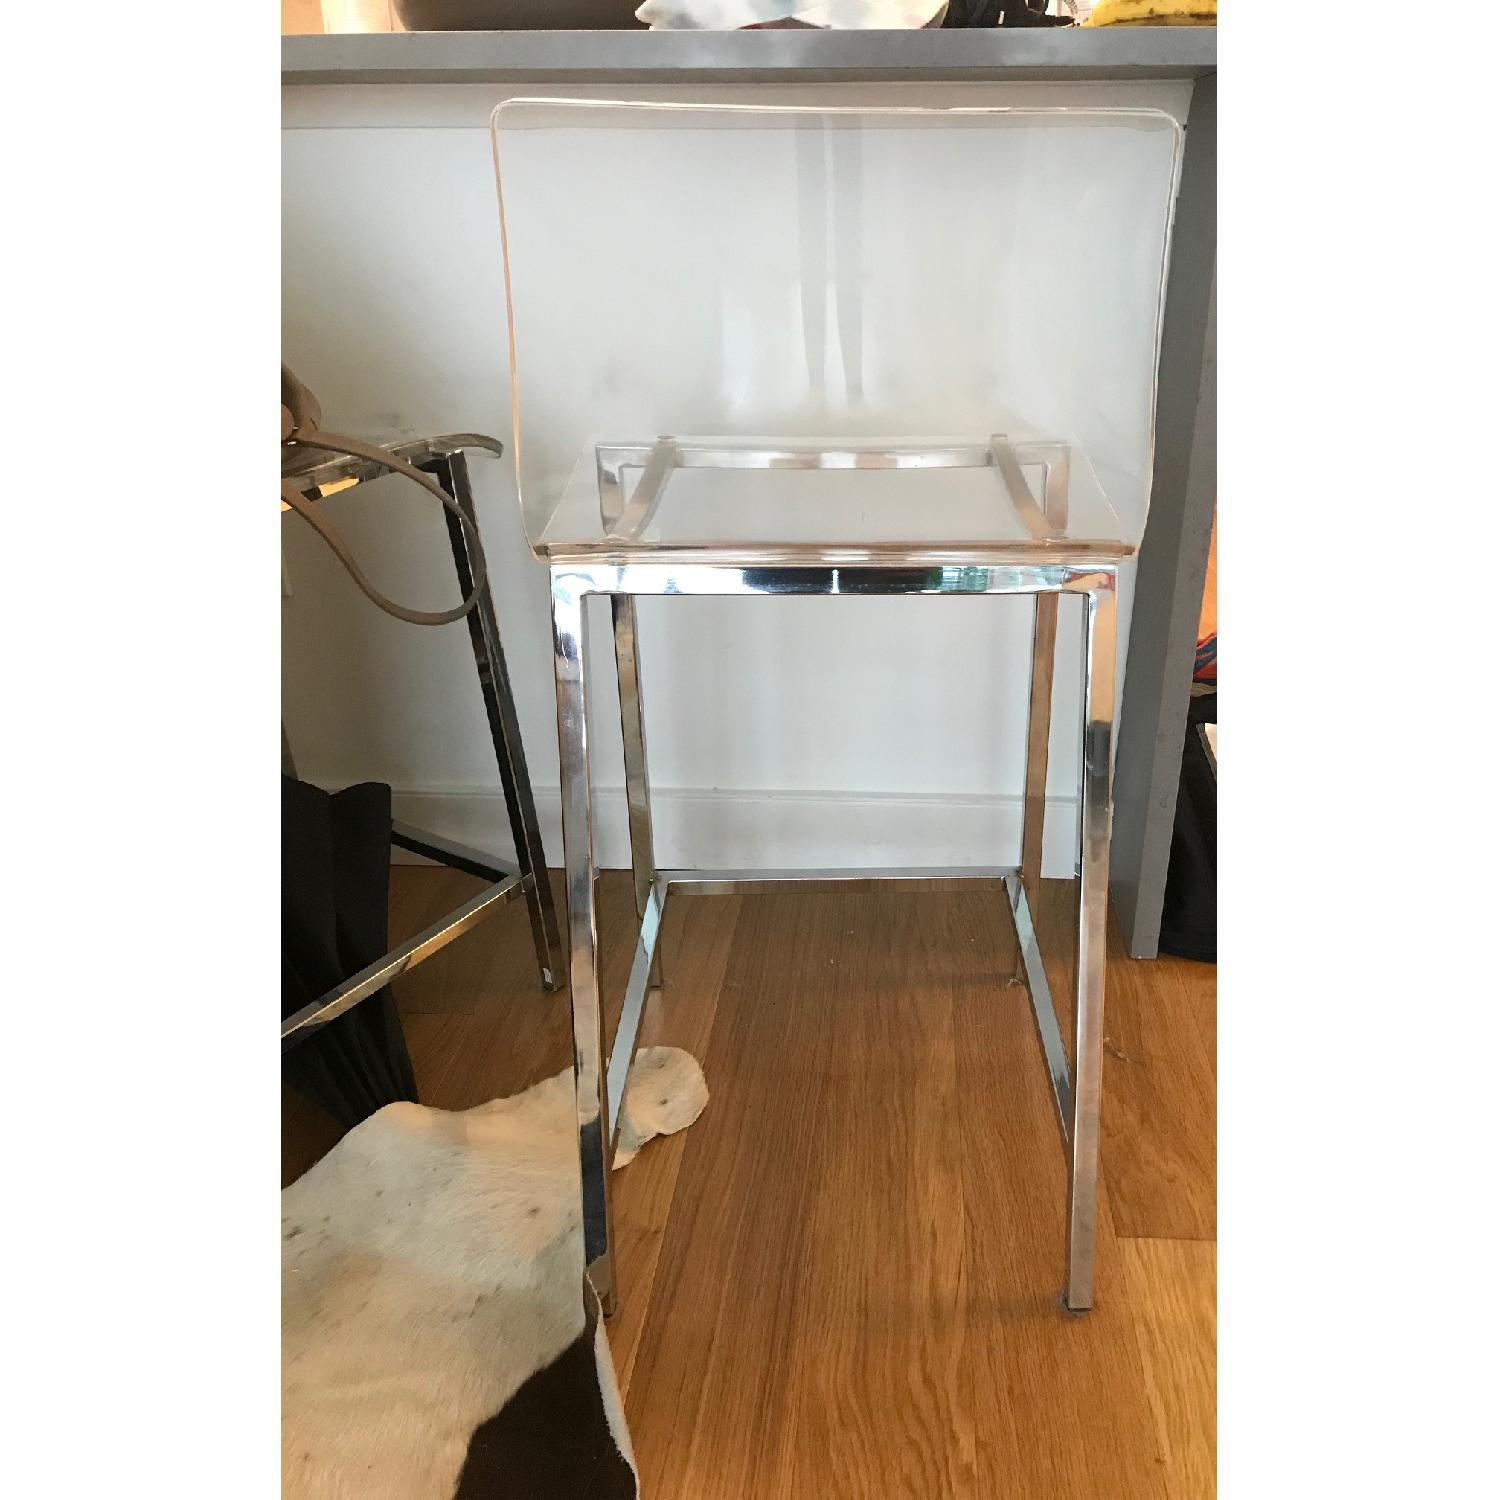 CB2 Clear Barstools in Nickel Finish - image-7